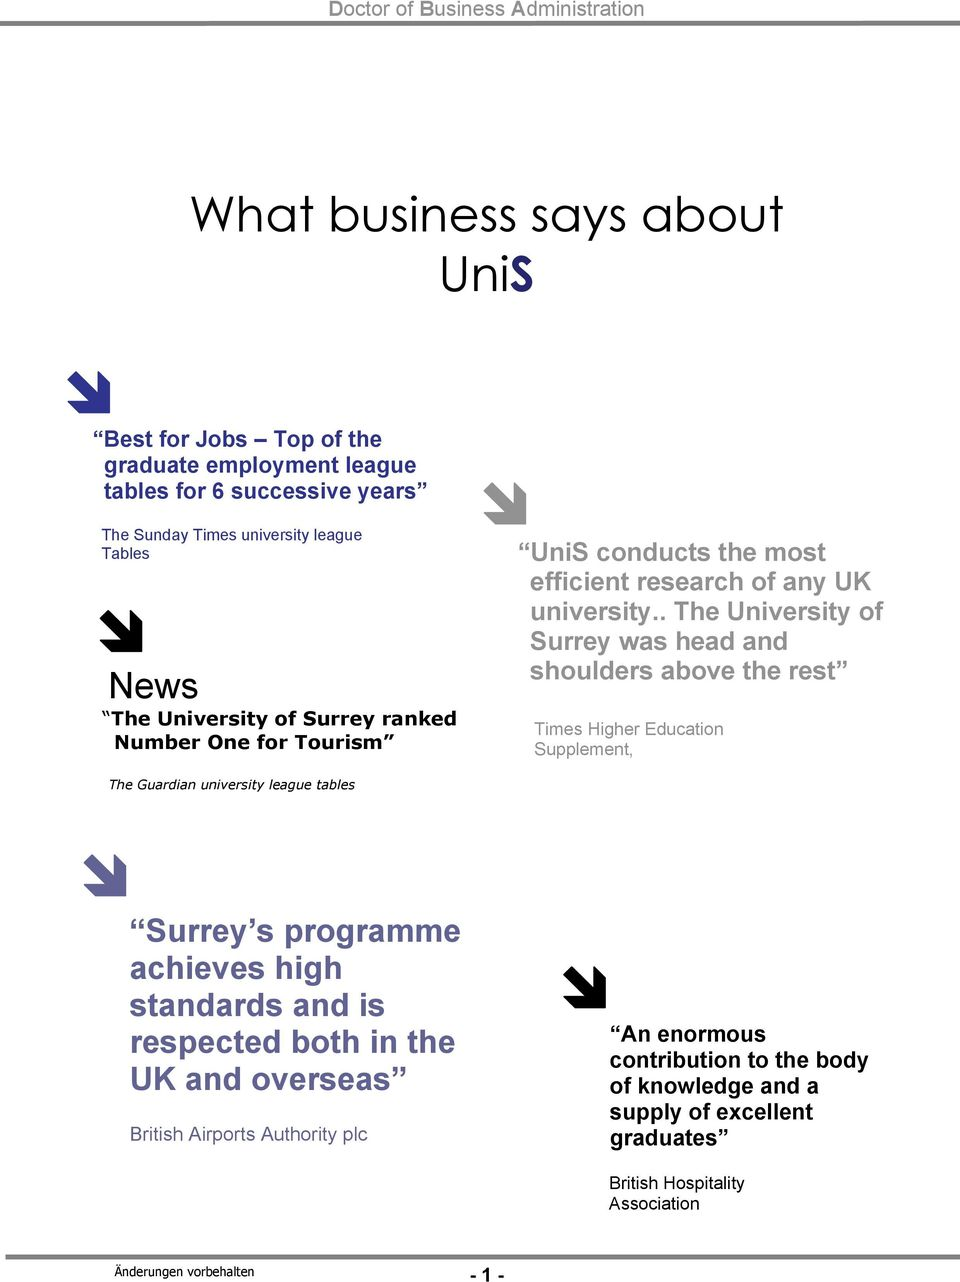 . The University of Surrey was head and shoulders above the rest Times Higher Education Supplement, The Guardian university league tables Surrey s programme